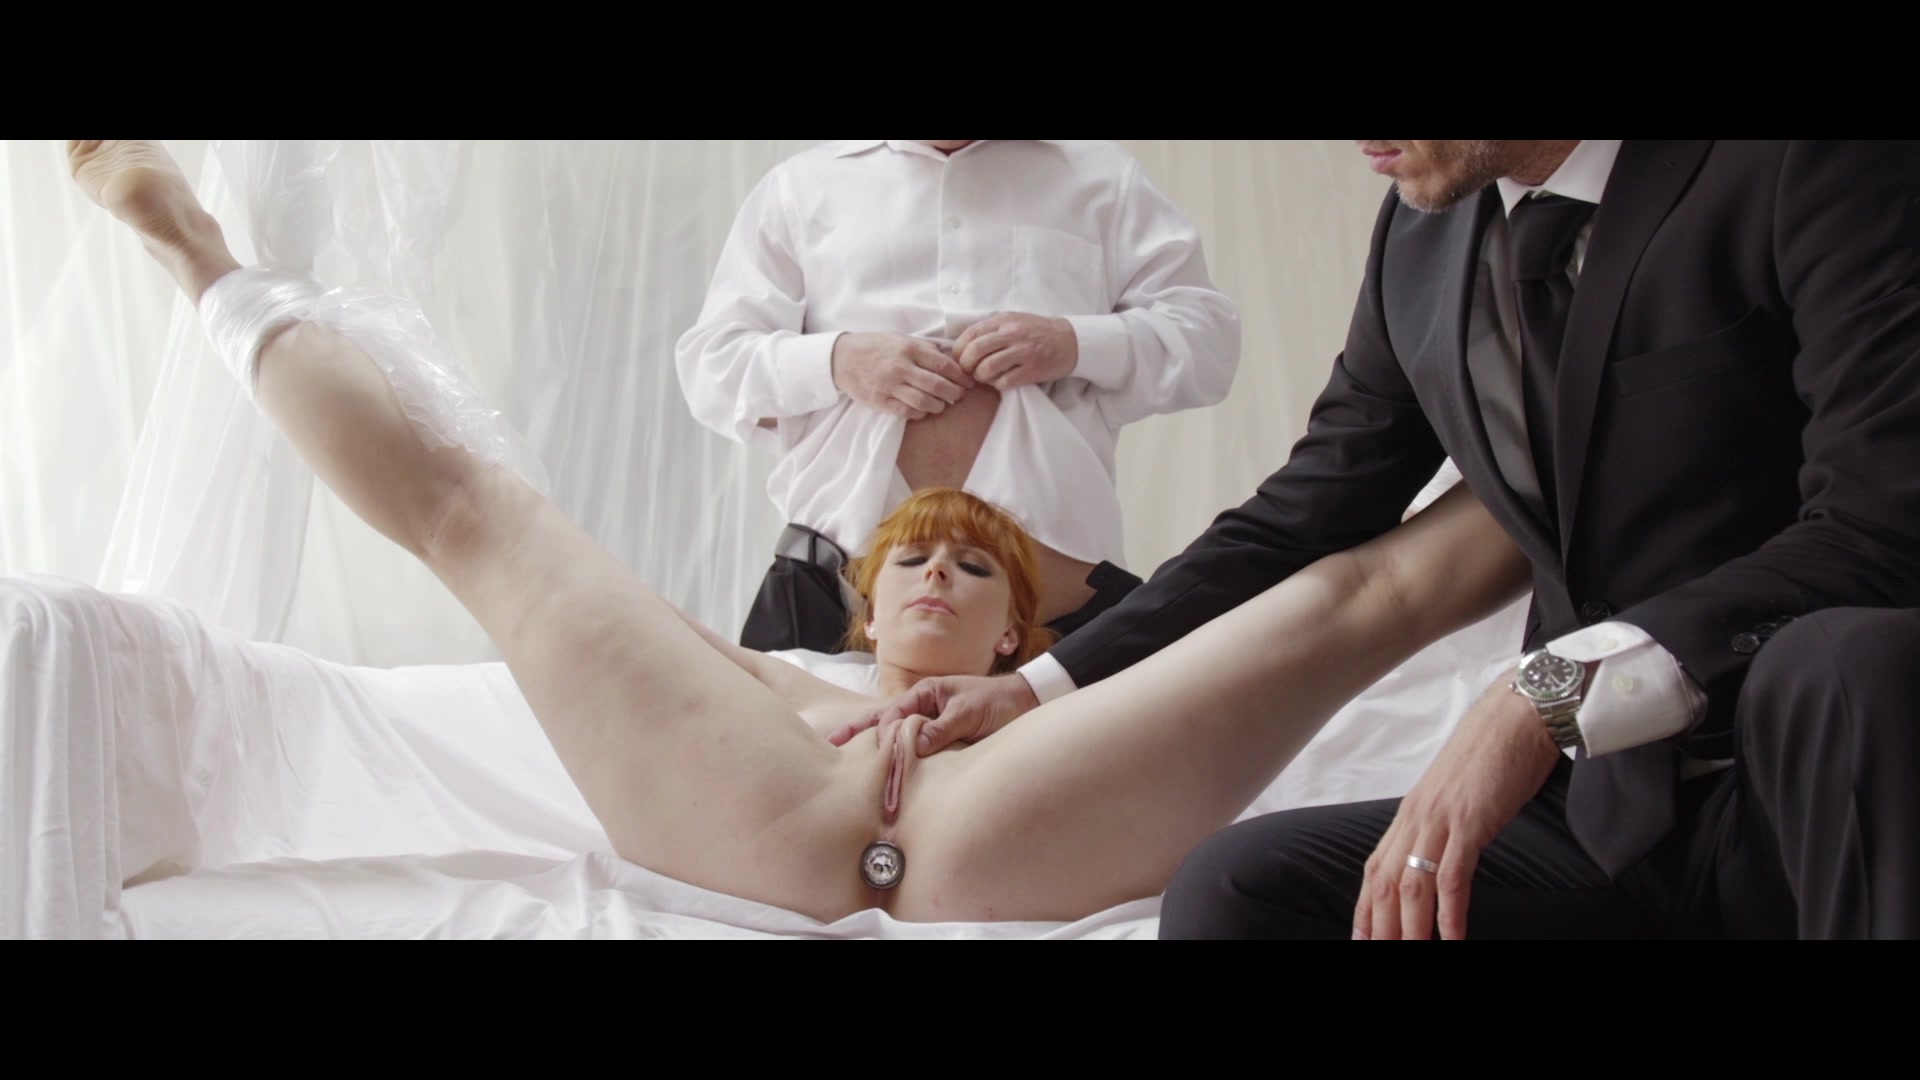 Scene with John Strong, Mick Blue and Penny Pax - image 9 out of 20